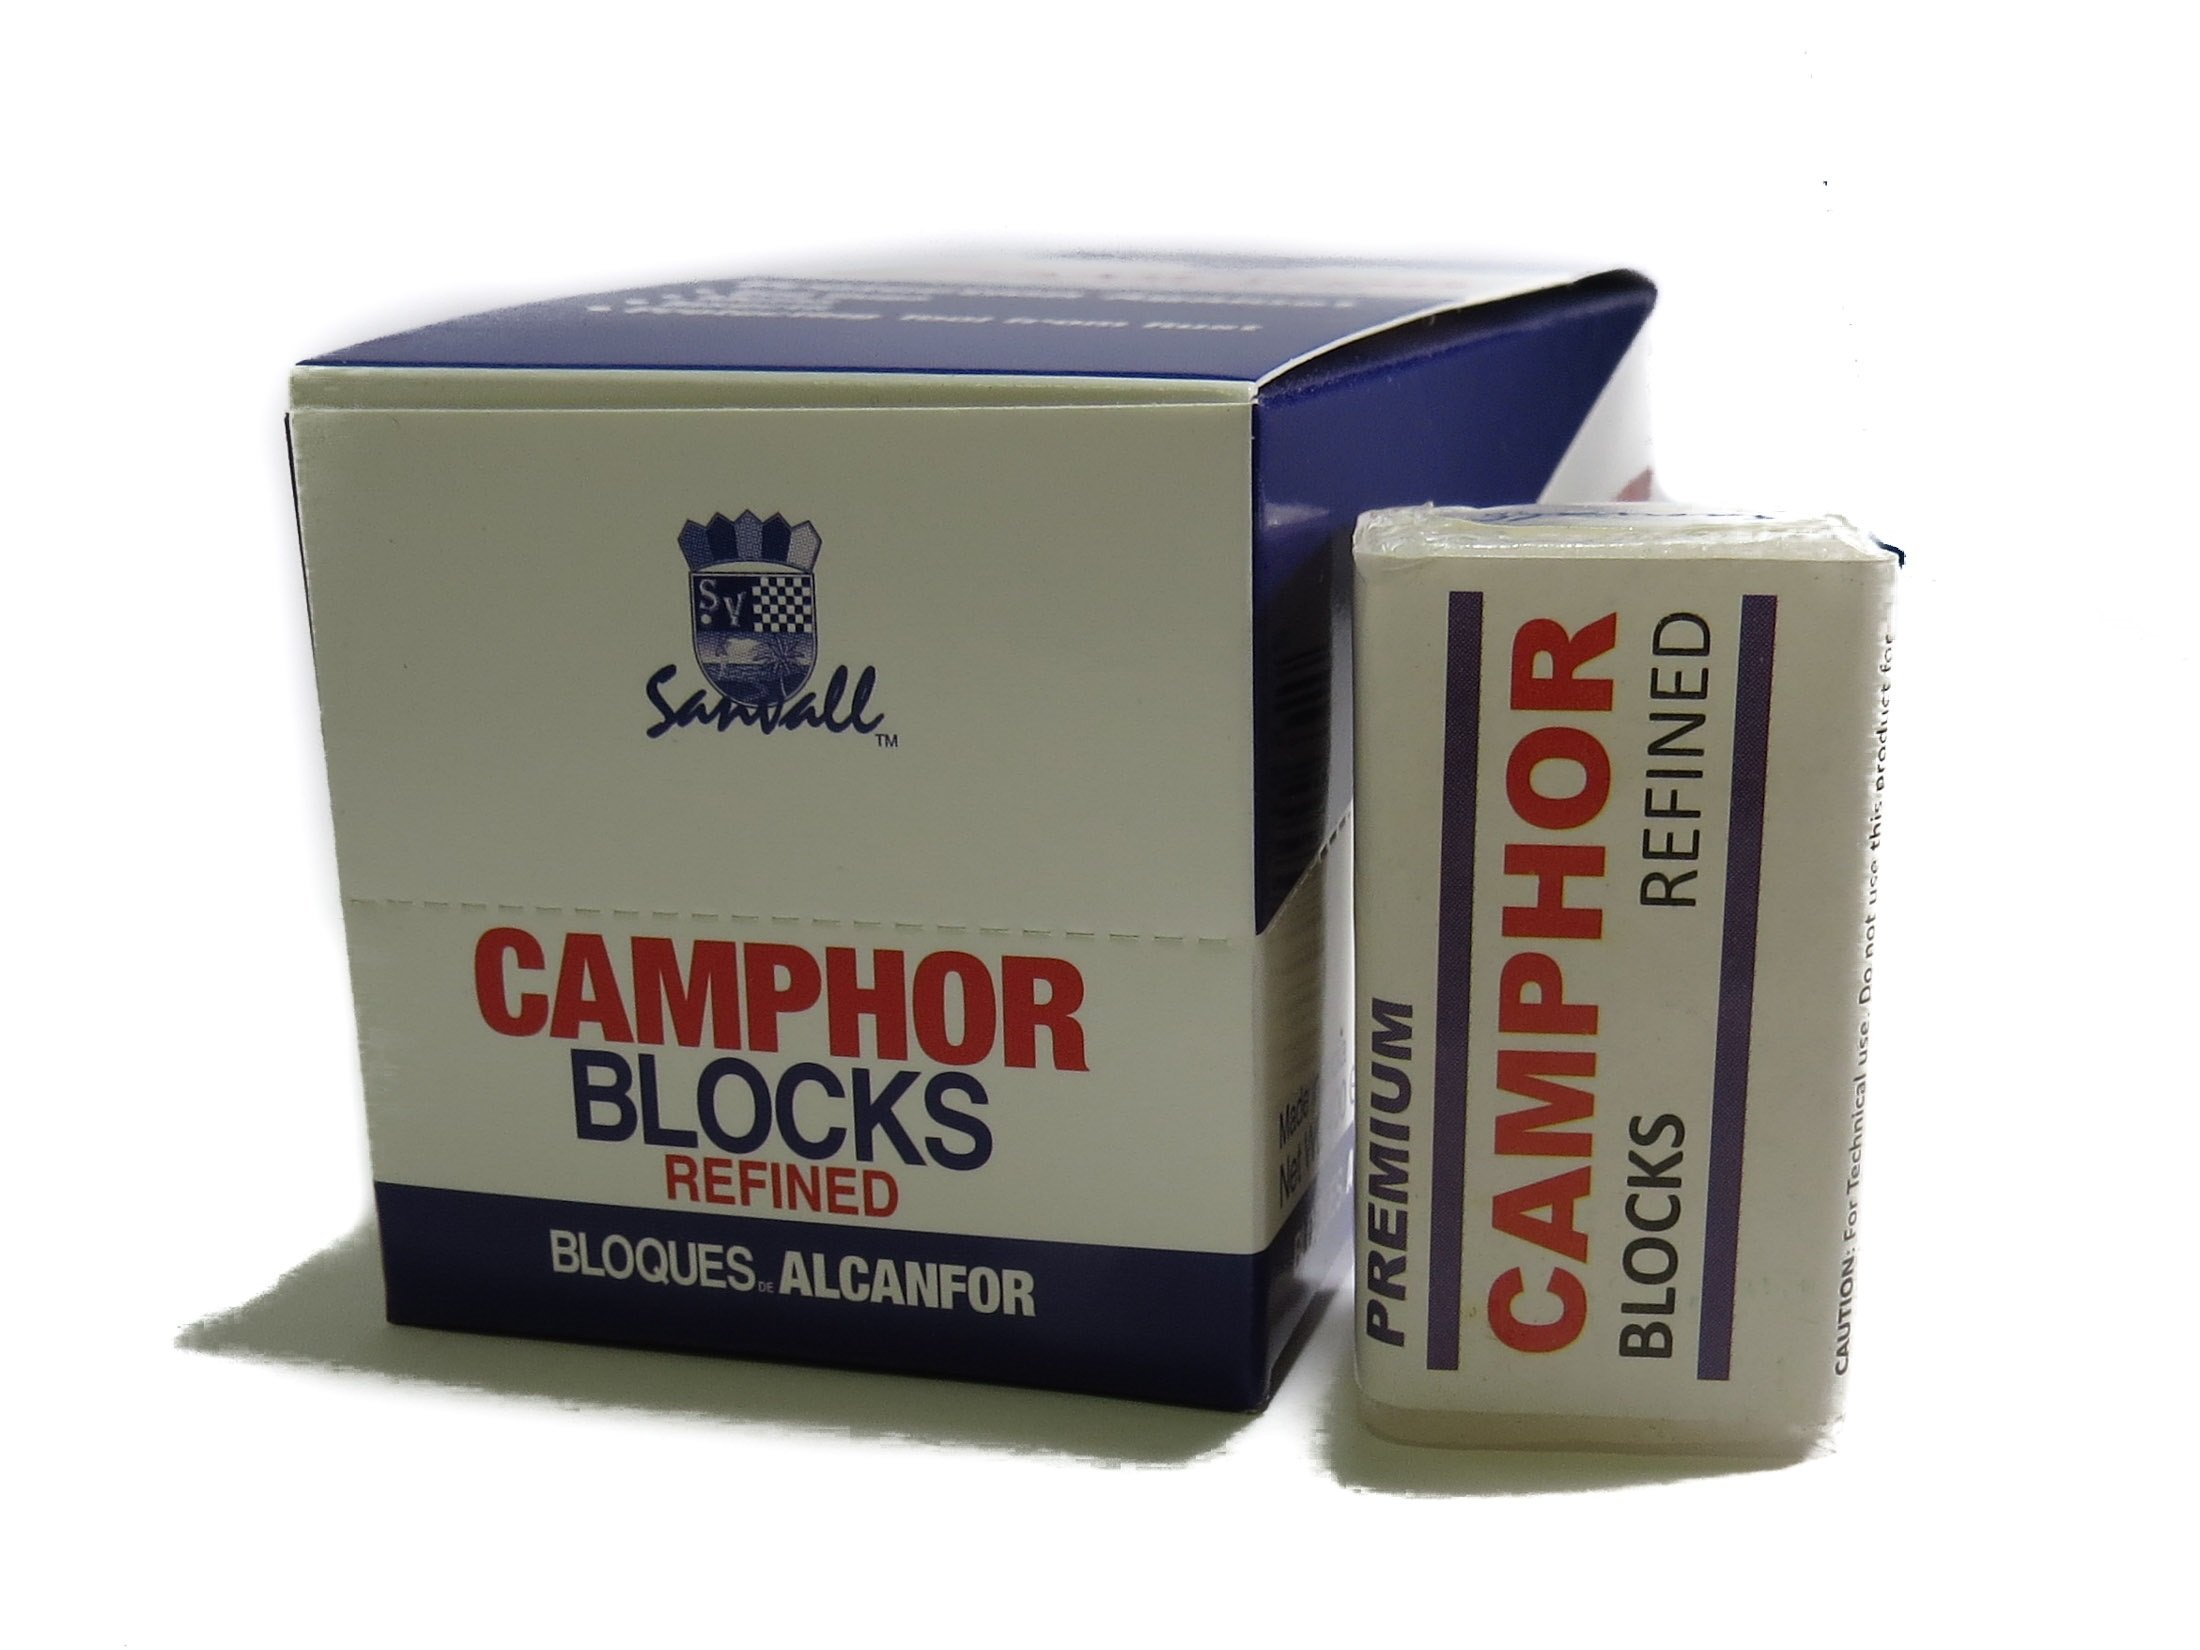 Box of Camphor 16 Blocks - 64 Tablets Premium Refined Camphor Sanvall - No Residue - Bed Bug - Tool Tarnish